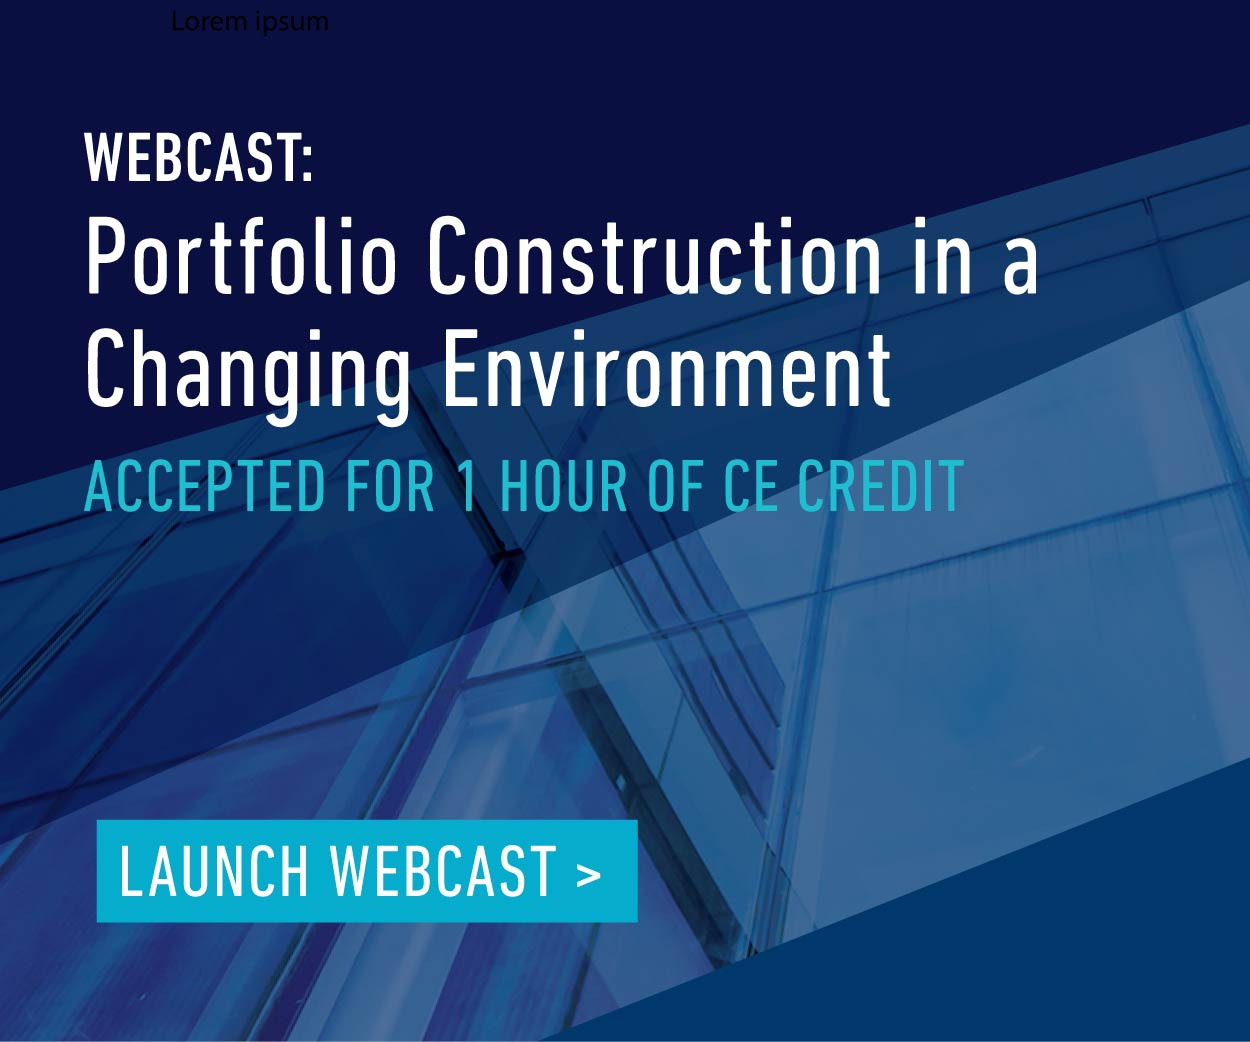 Portfolio Construction Webcast